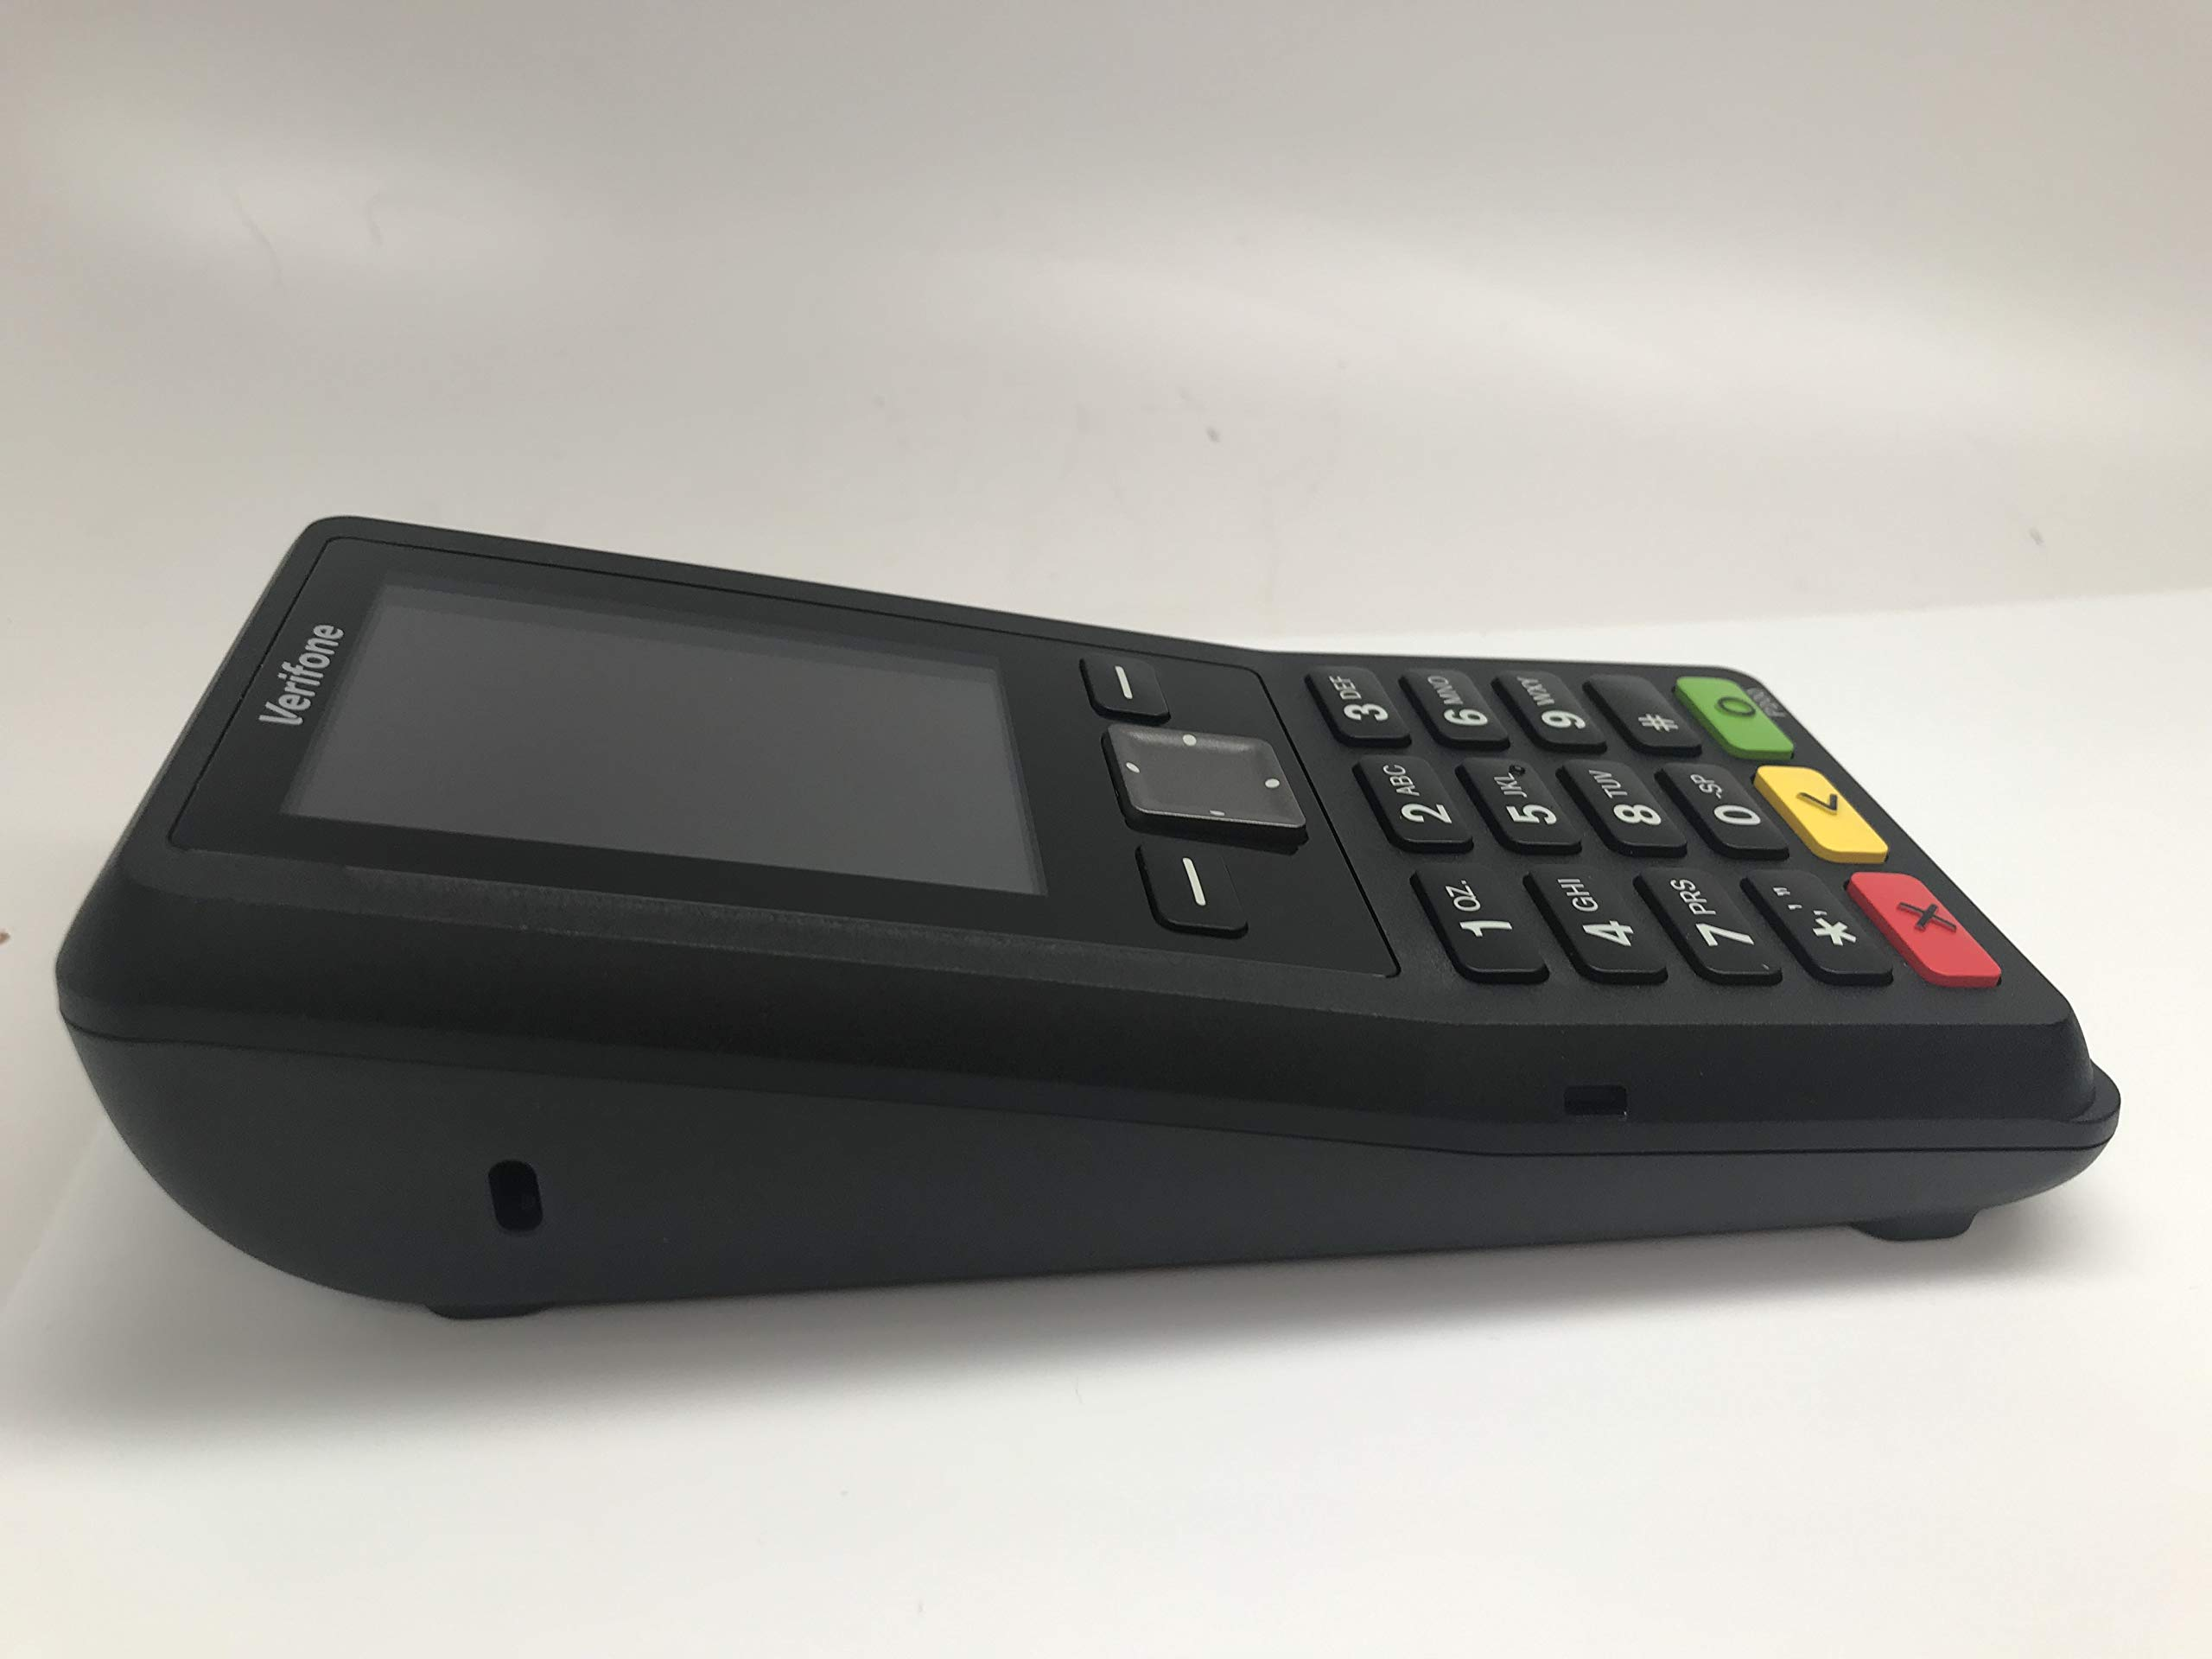 Verifone Engage P200 PIN Pad